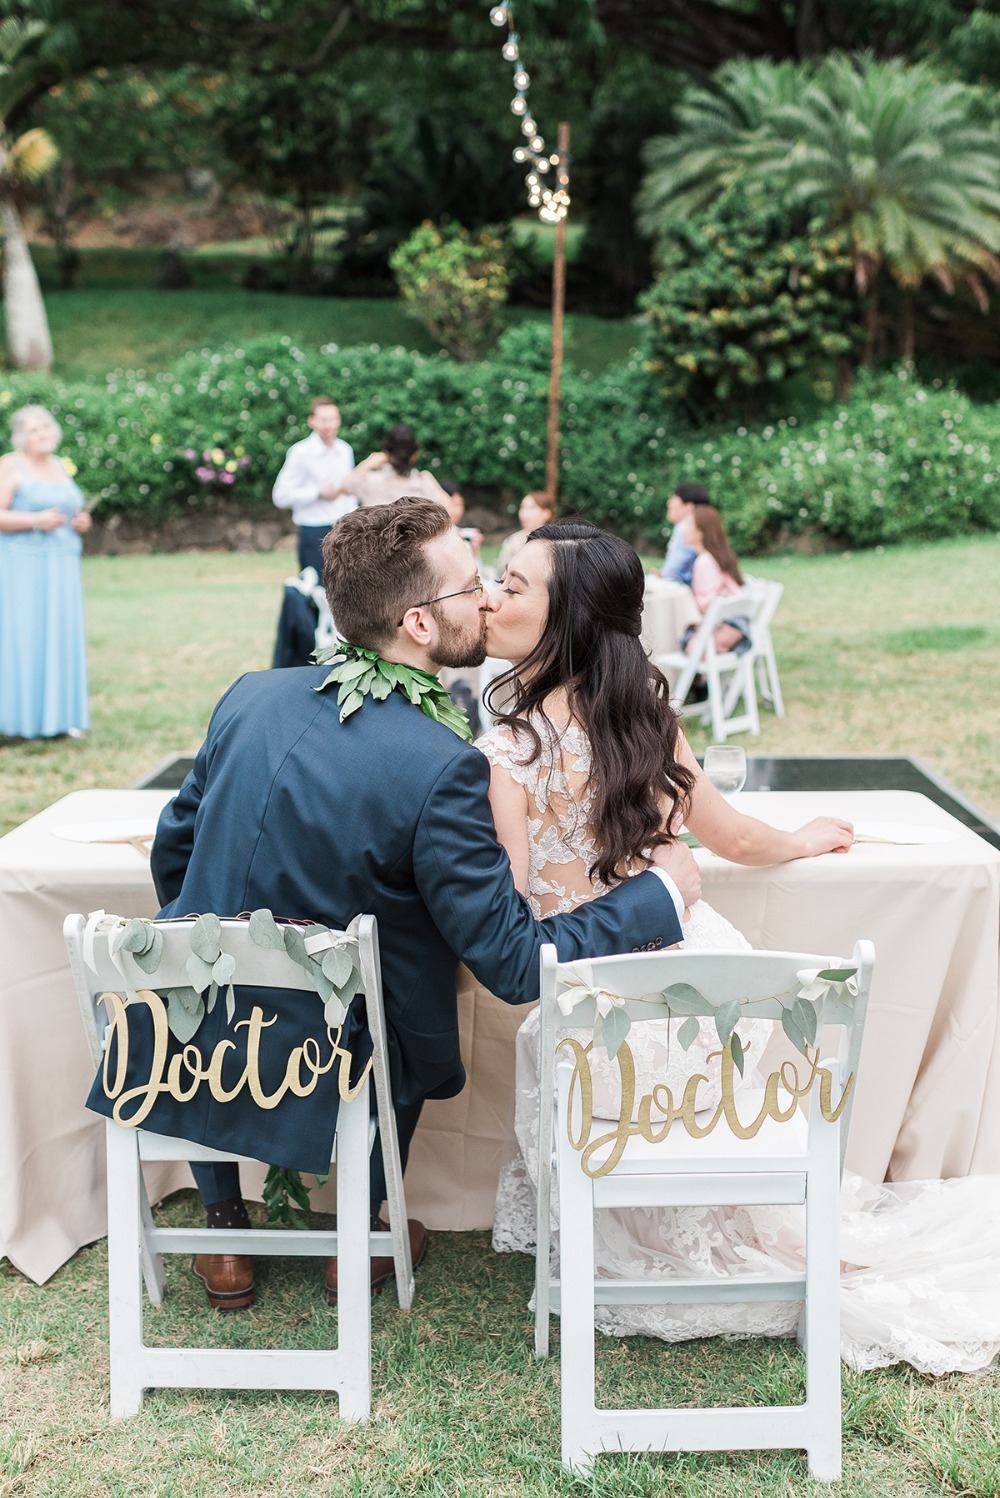 doctor doctor wedding seat signs